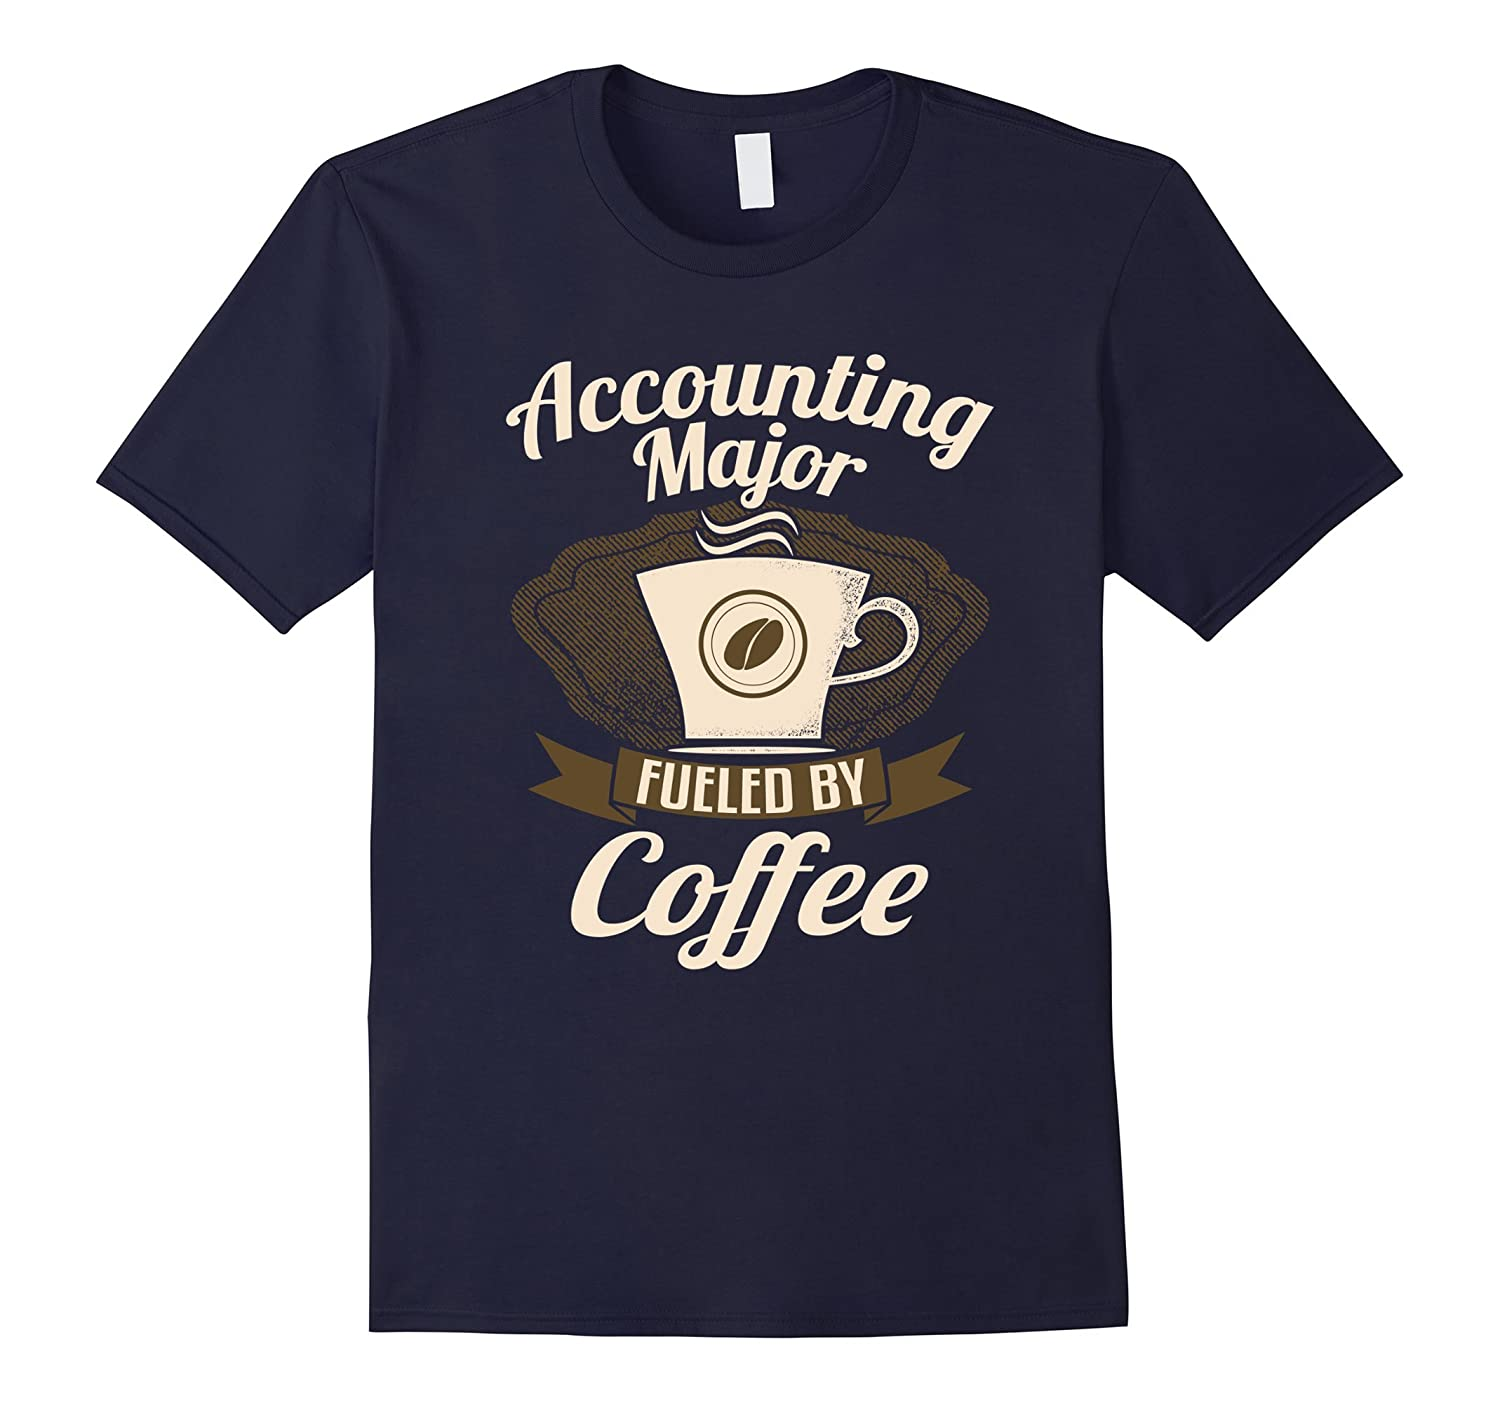 Accounting Major Fueled By Coffee Funny T-Shirt-CL